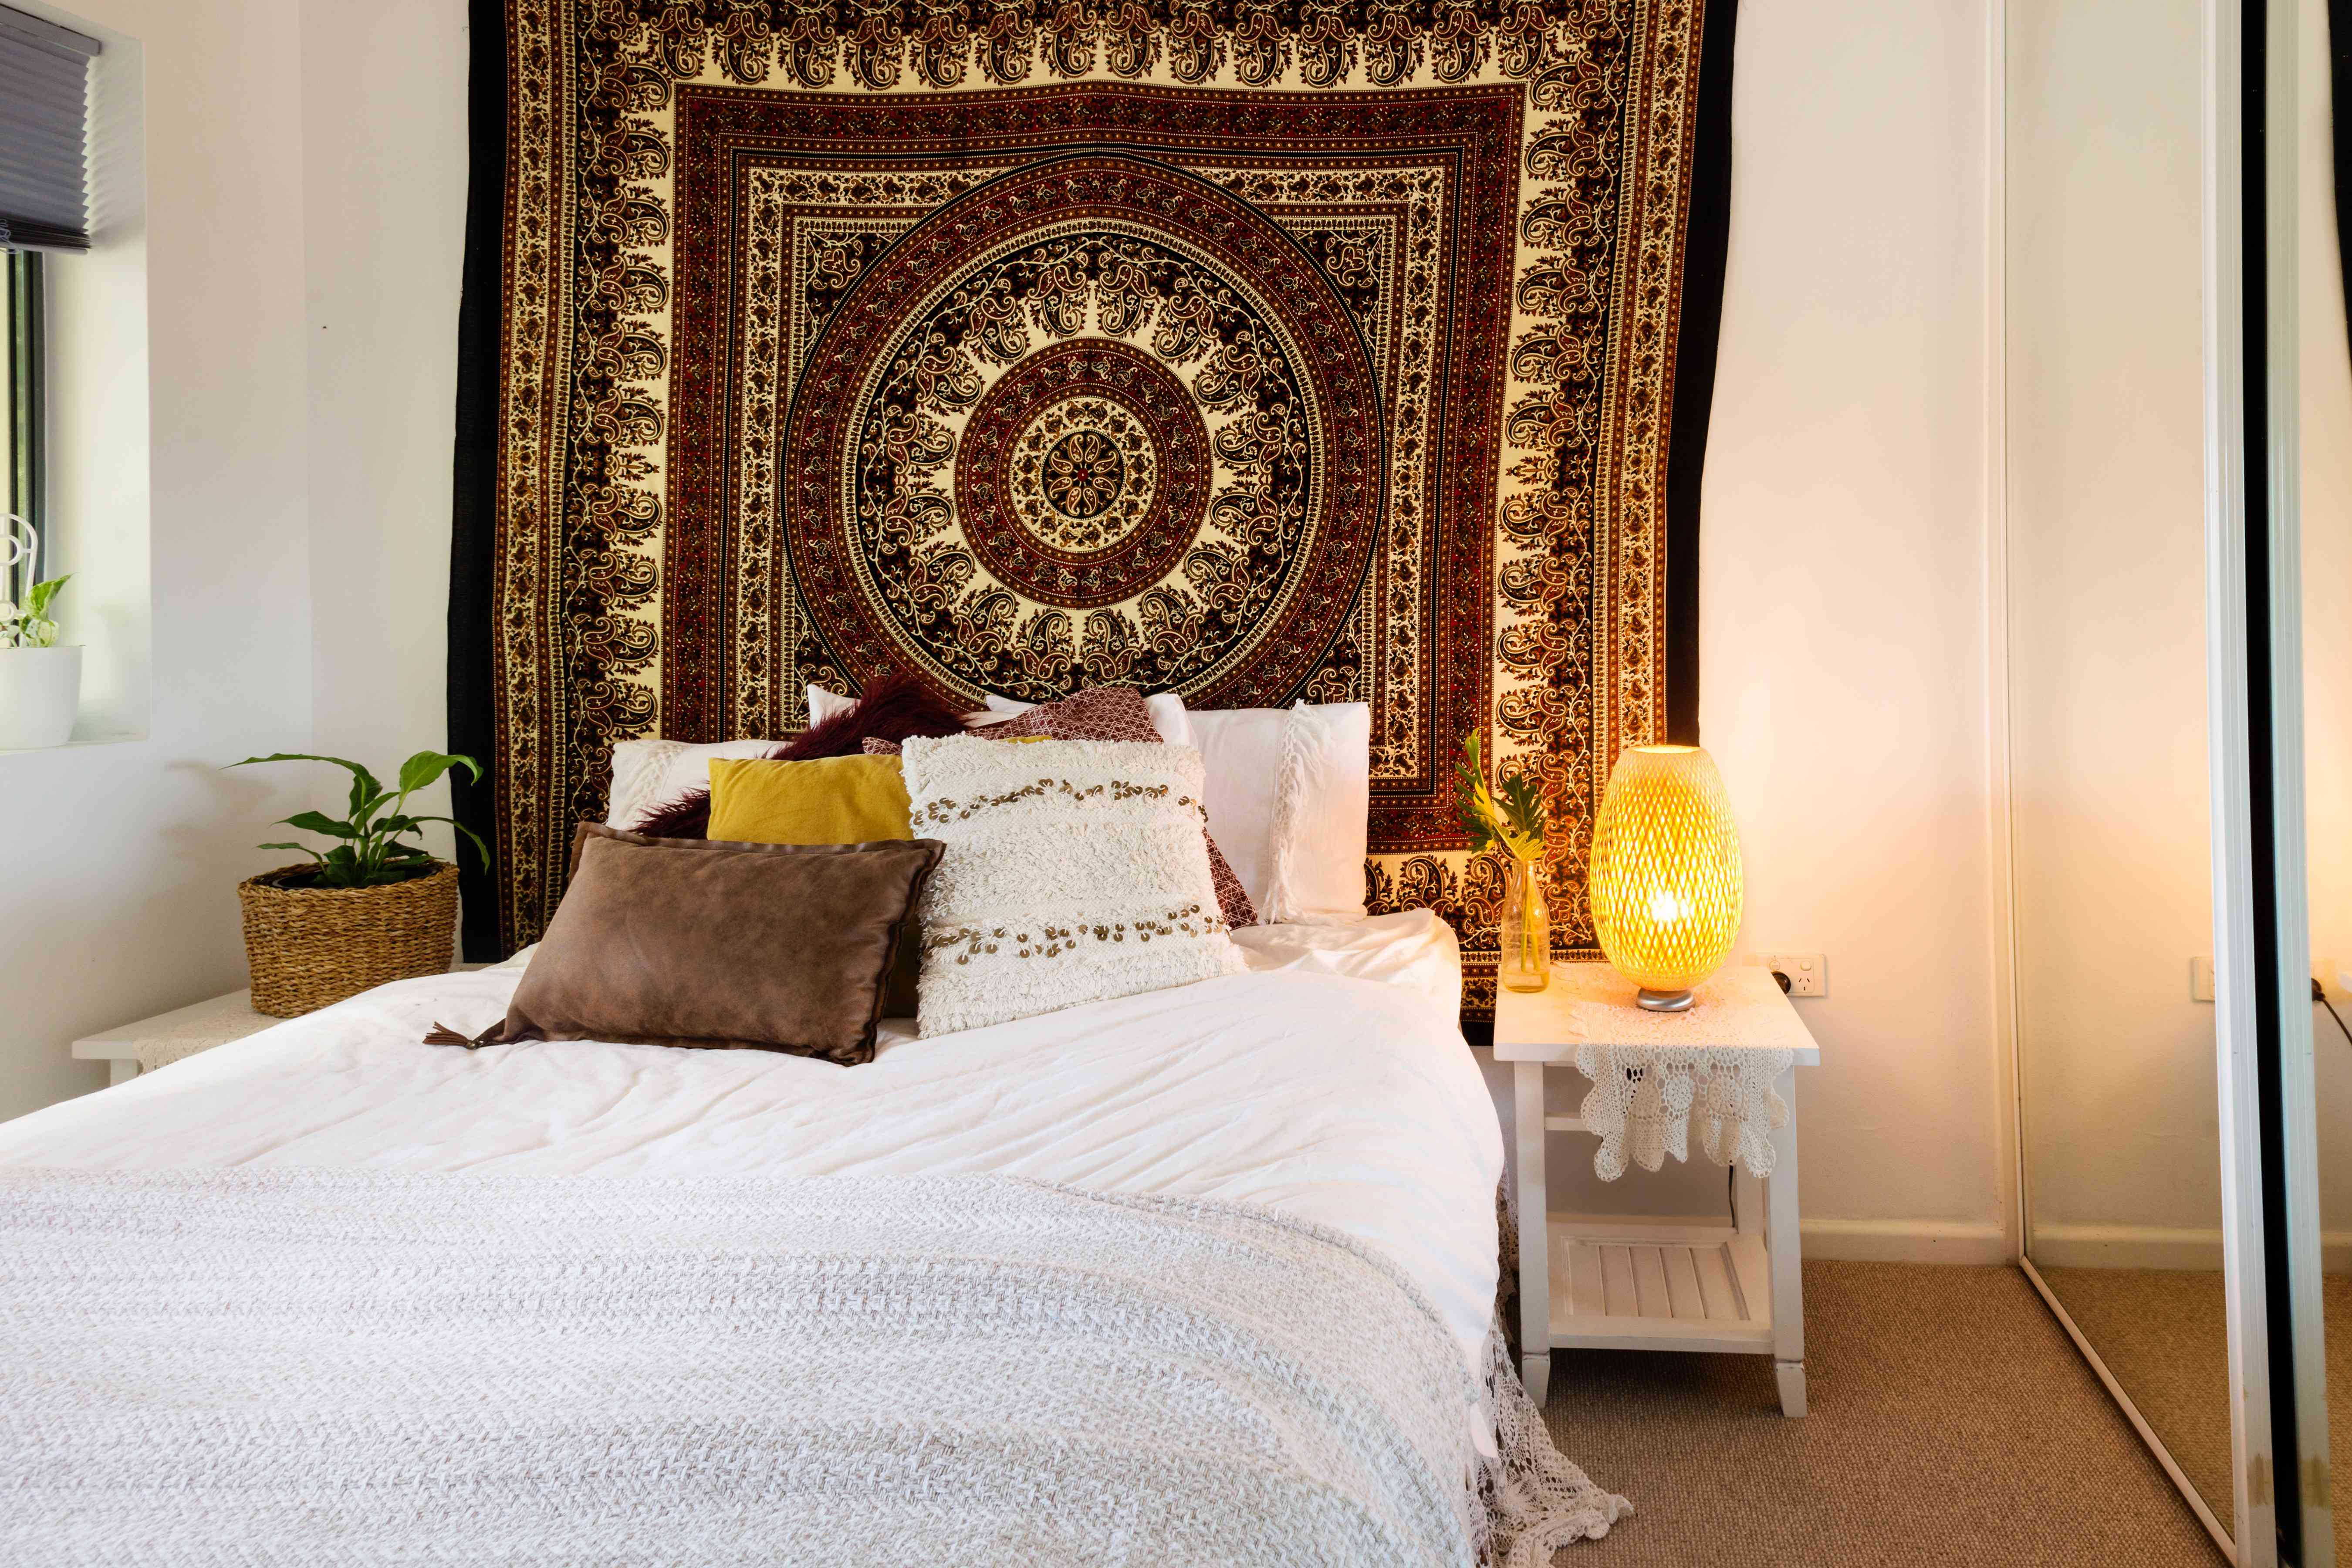 wall tapestry in a bedroom